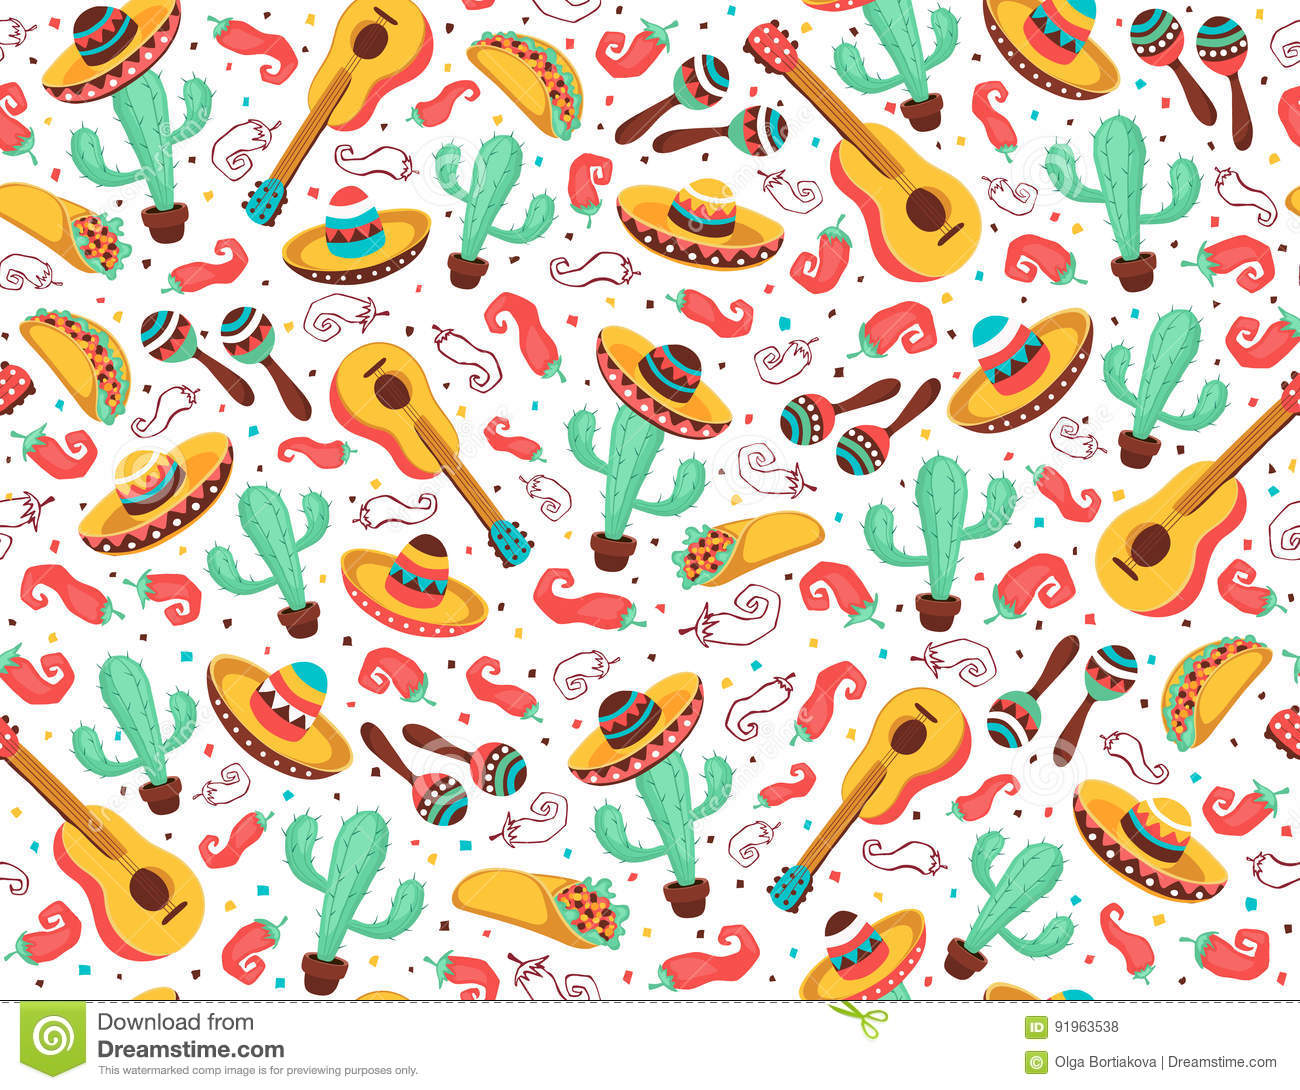 Viva Mexico Poster Stock Vector Illustration Of Flat 91963538